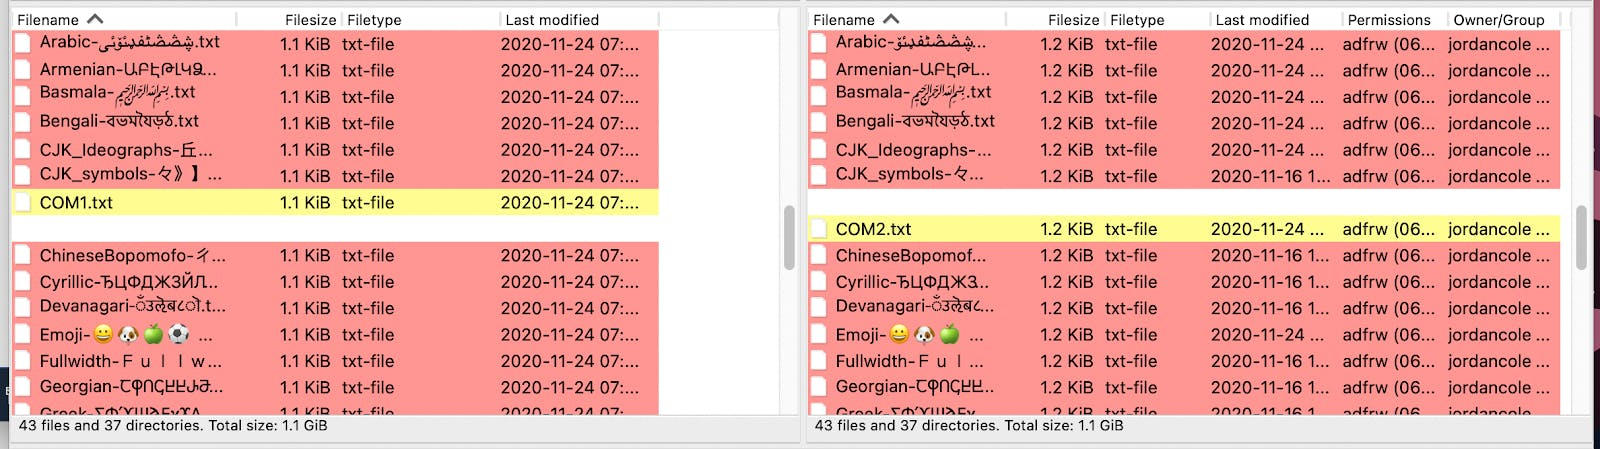 Example of using advanced features in FileZilla.